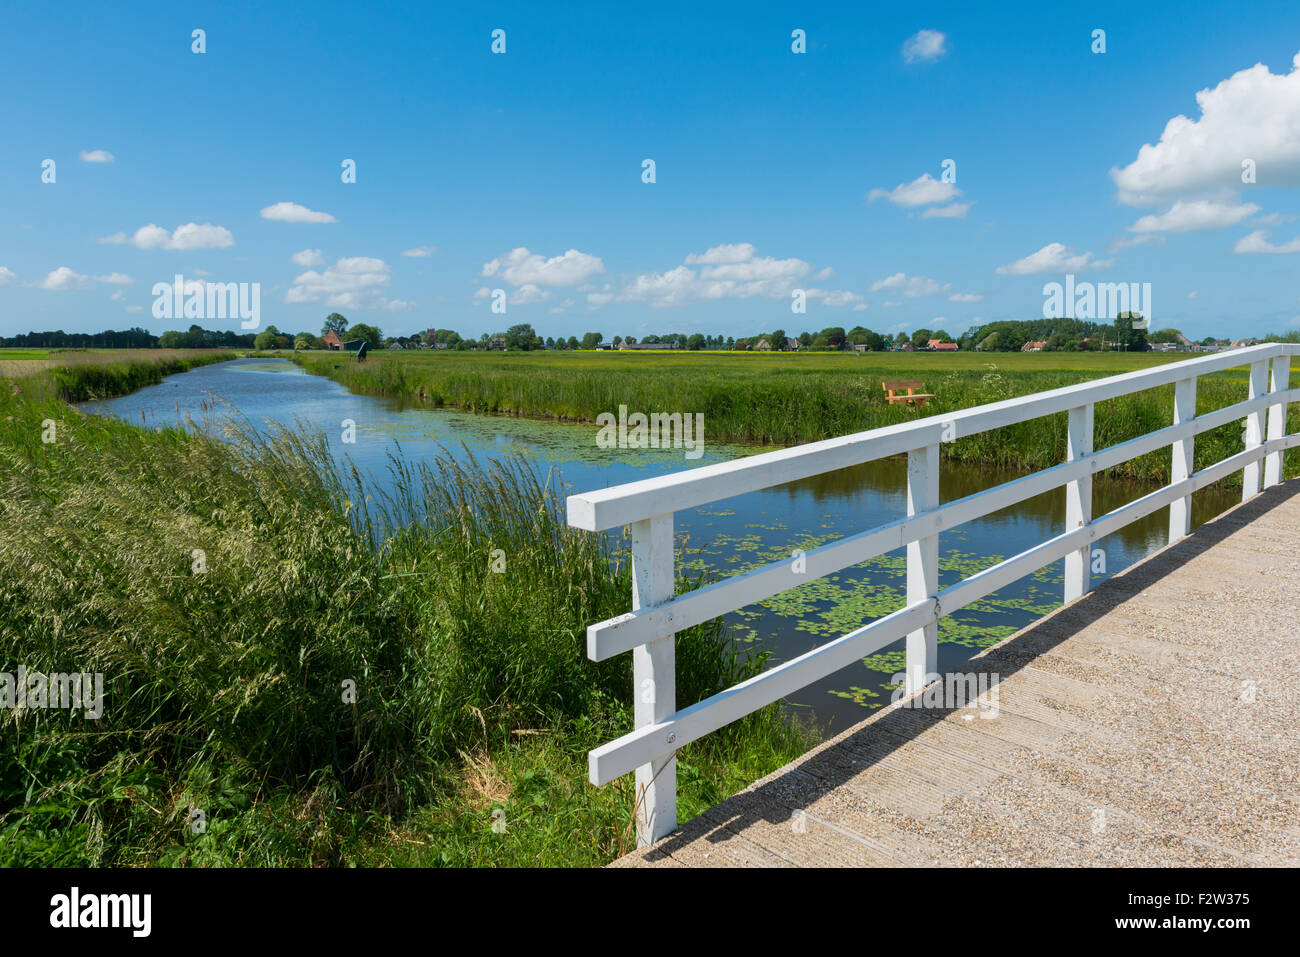 Bridge at Aarstwoud in Noord-Holland with water and Ditch. - Stock Image